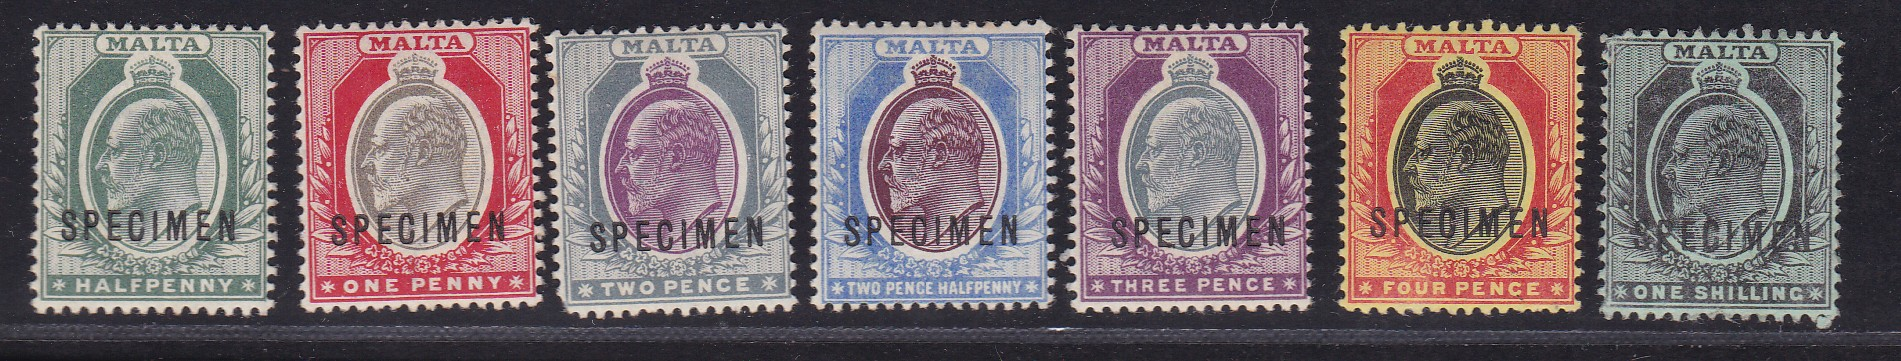 Lot 433 - world wide philately British Empire Commonwealth, Malta -  Romano House of Stamp sales ltd Auction #41